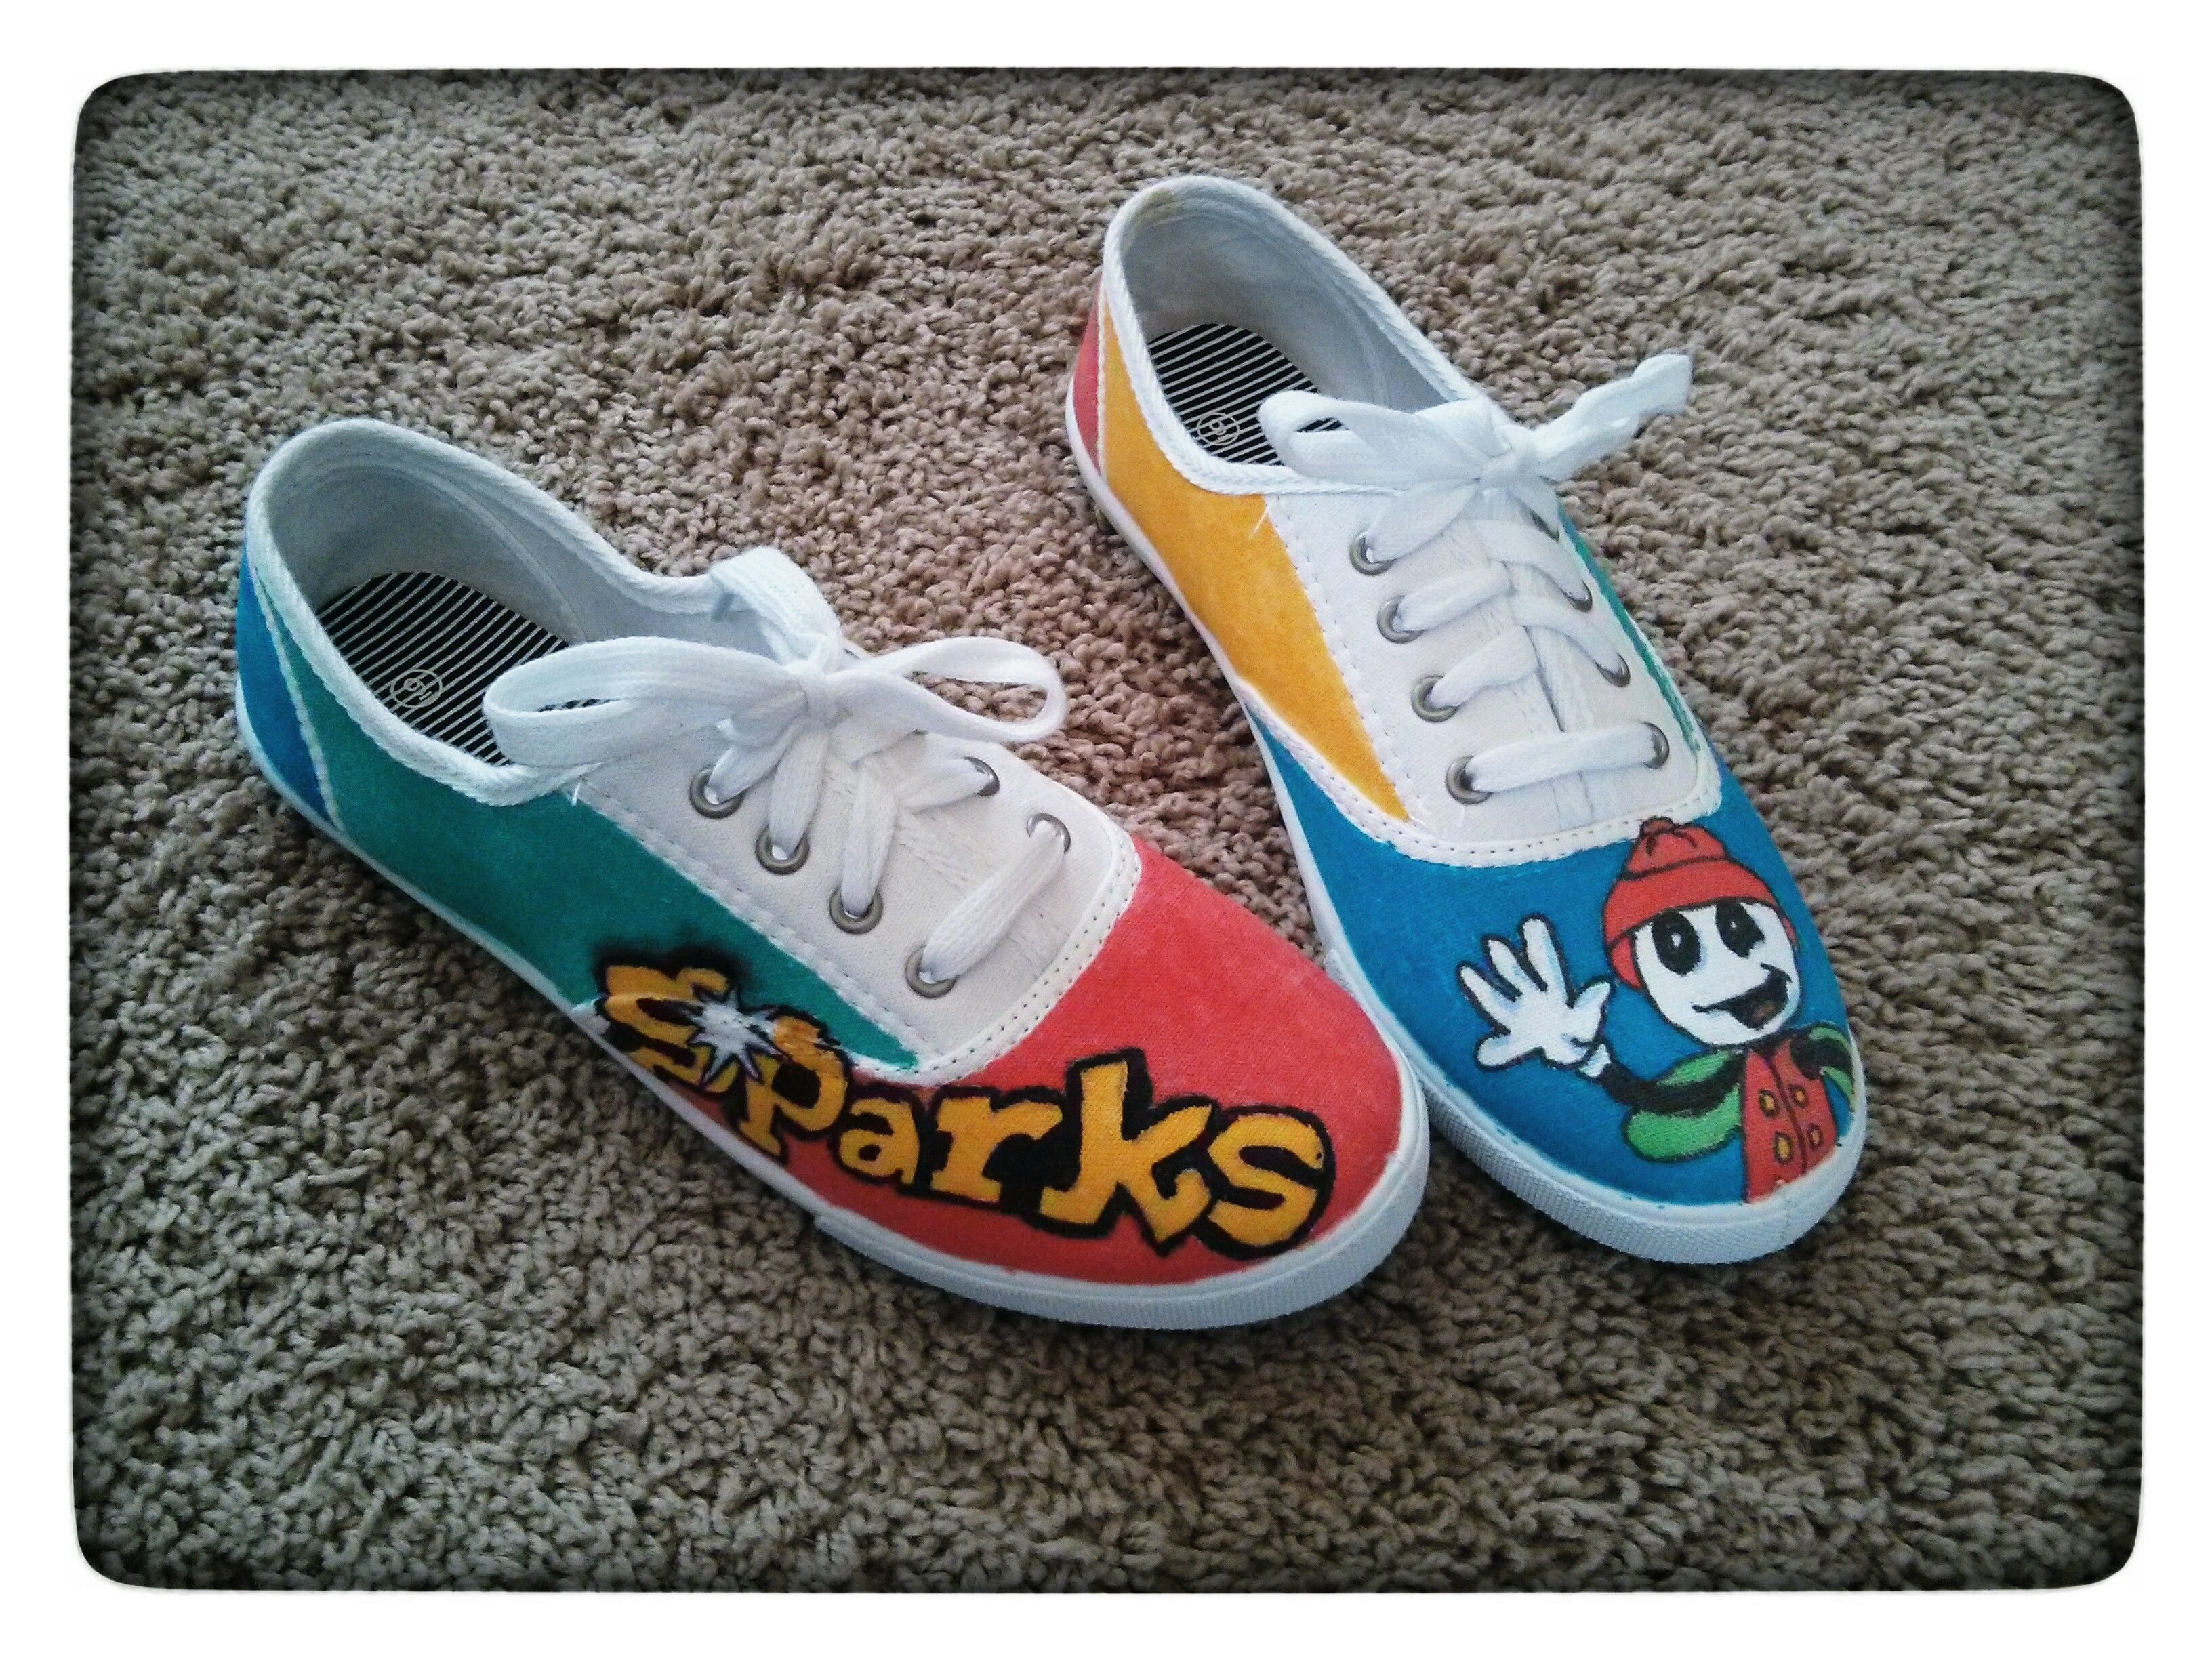 Awana Sparks Shoes Oh Yes S I Did